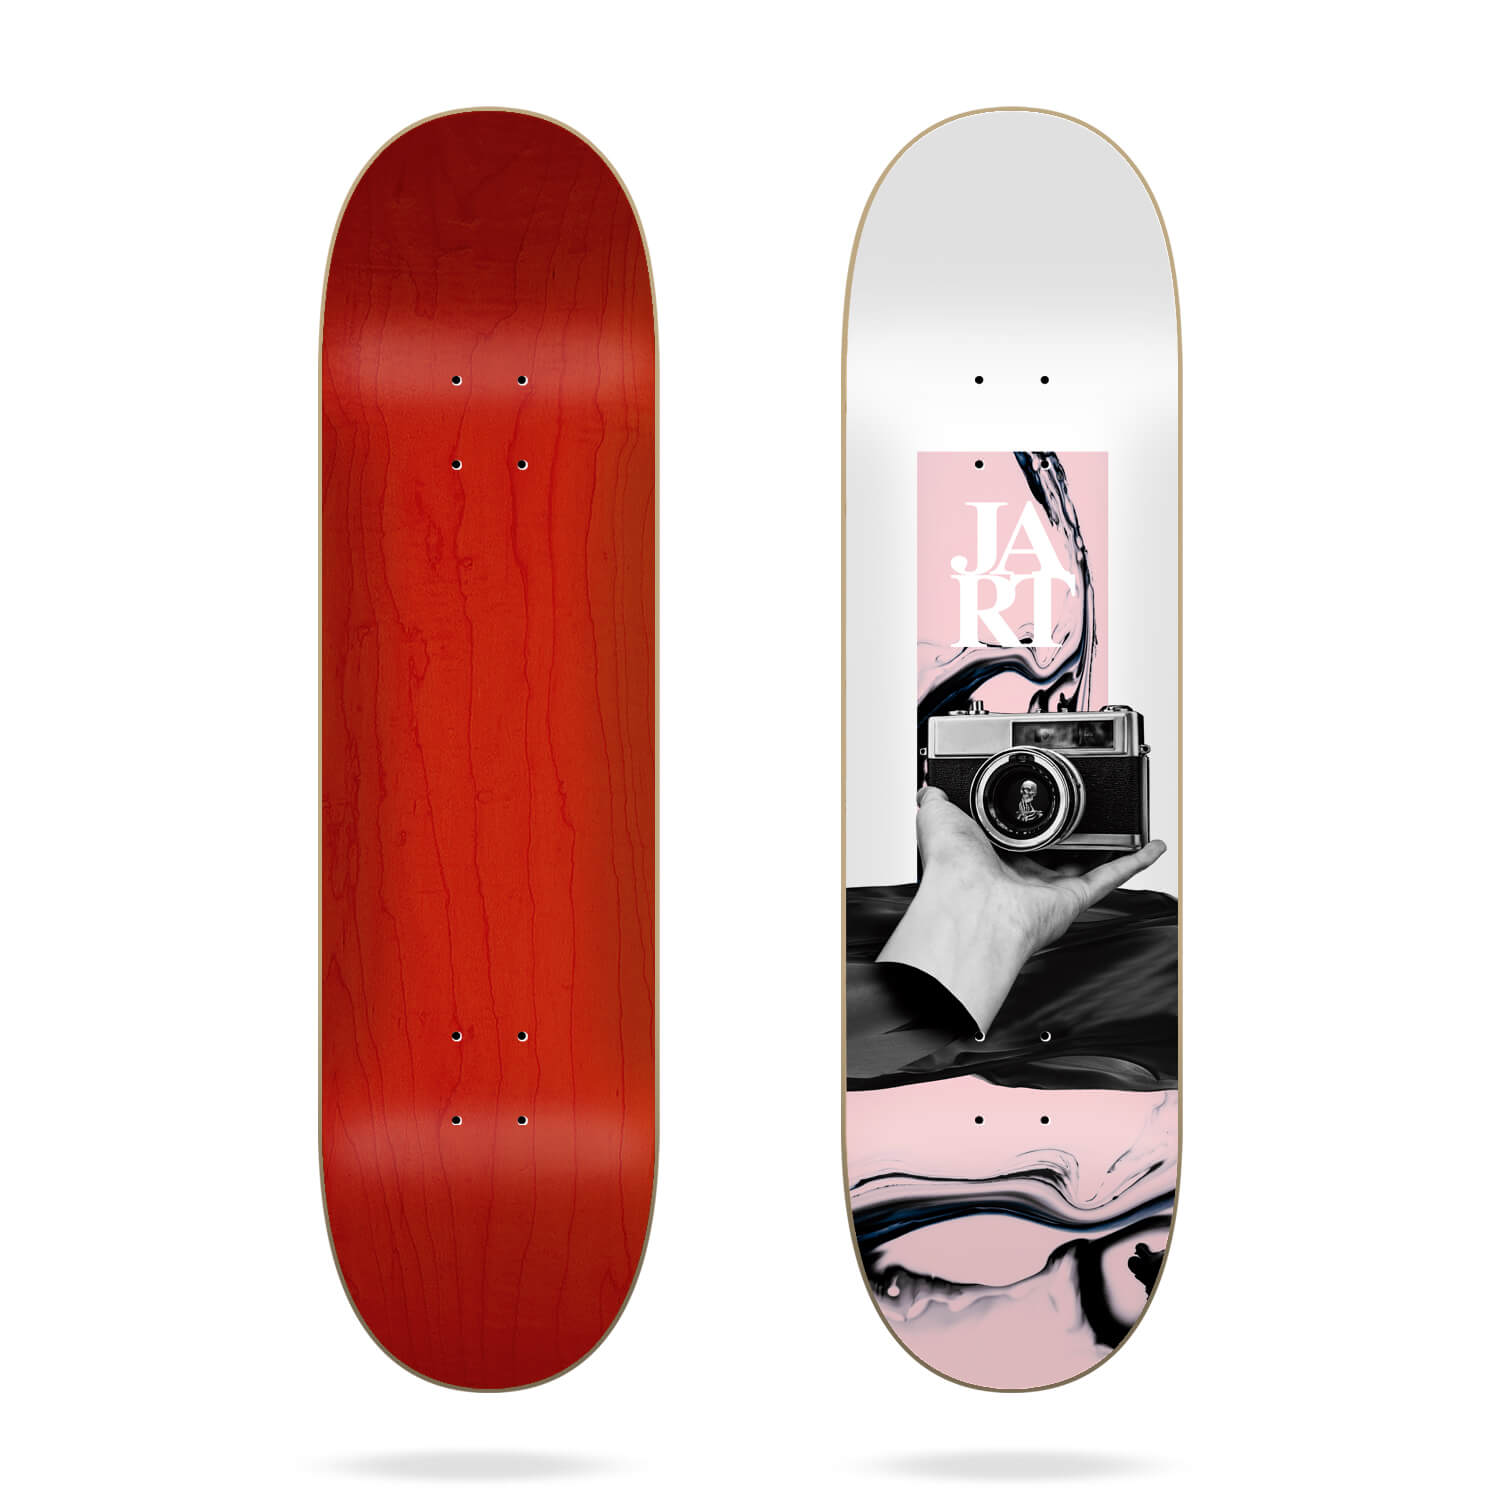 "Jart Abstraction 8.125"" deck"